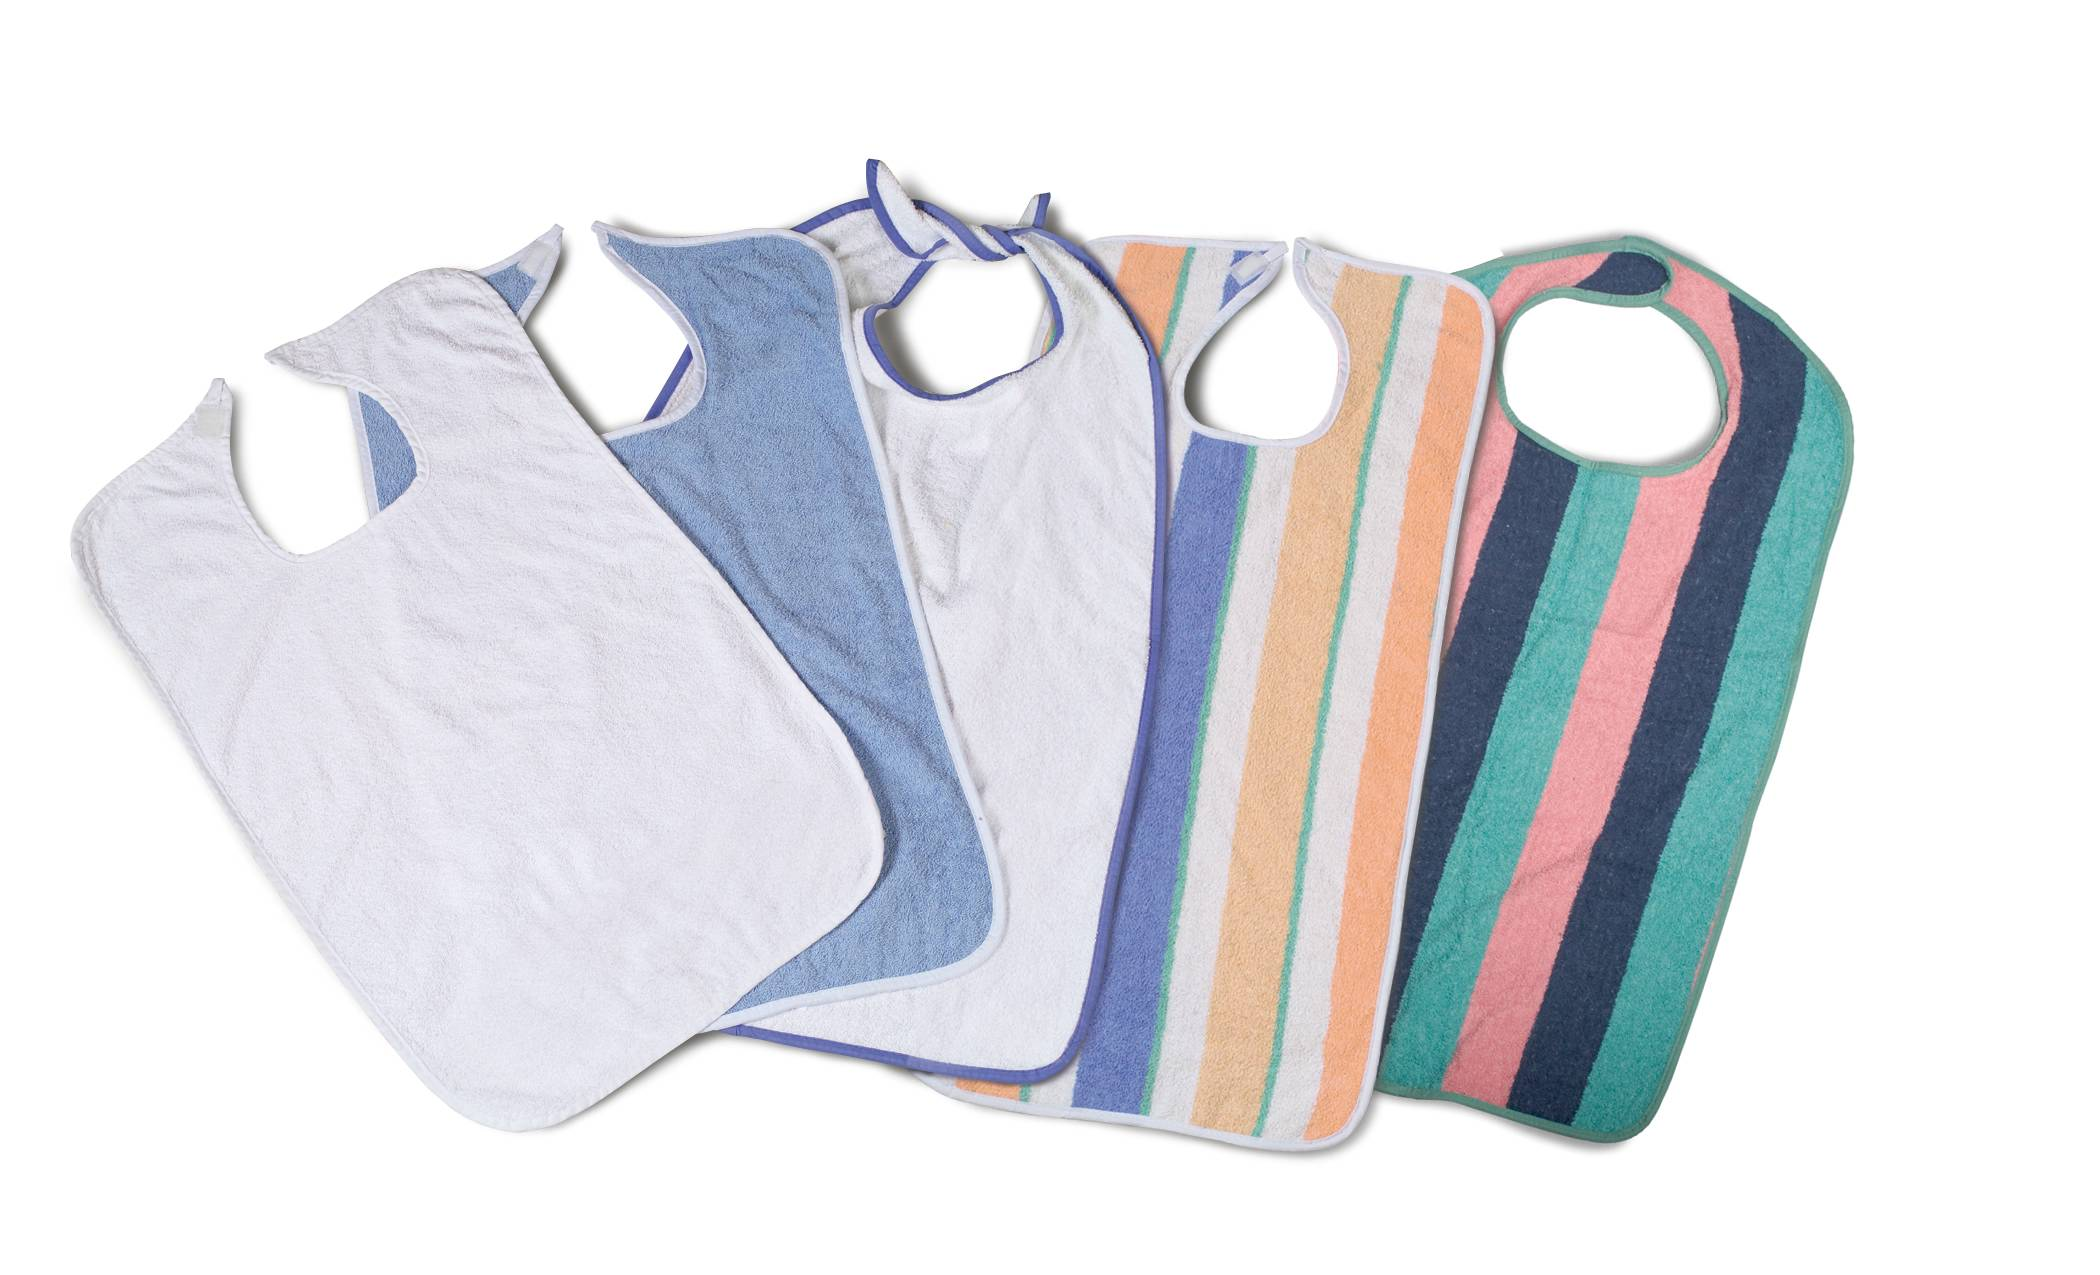 EZ Tie Terry Cloth Bibs